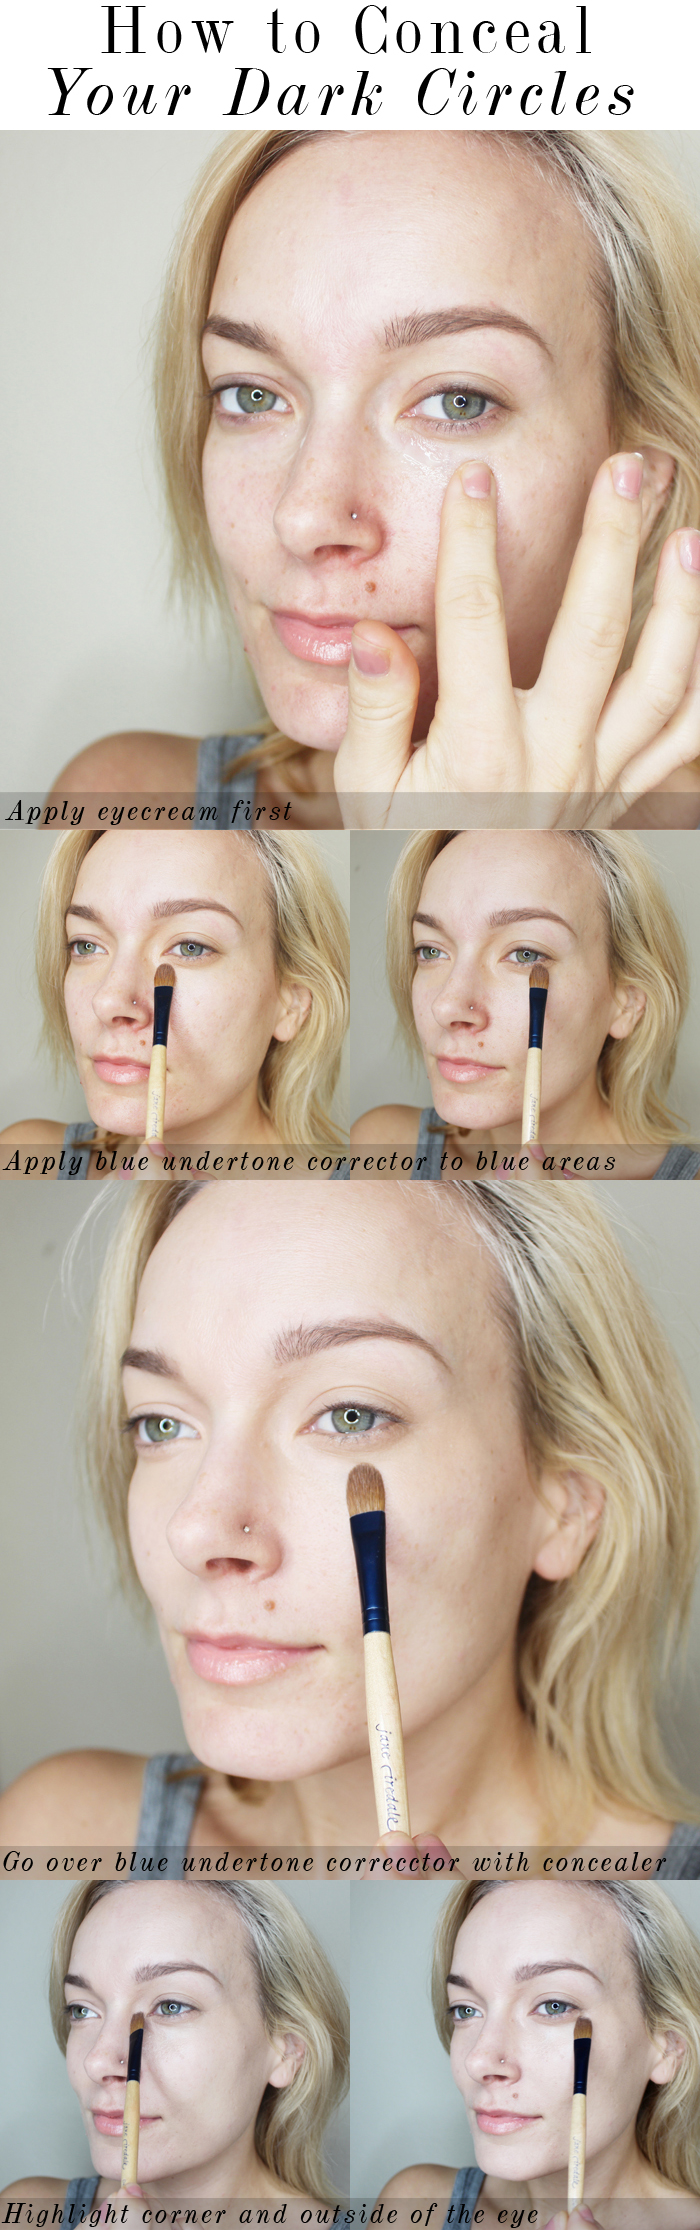 Learn the beauty basics on how to conceal your dark circles using the best concealers.